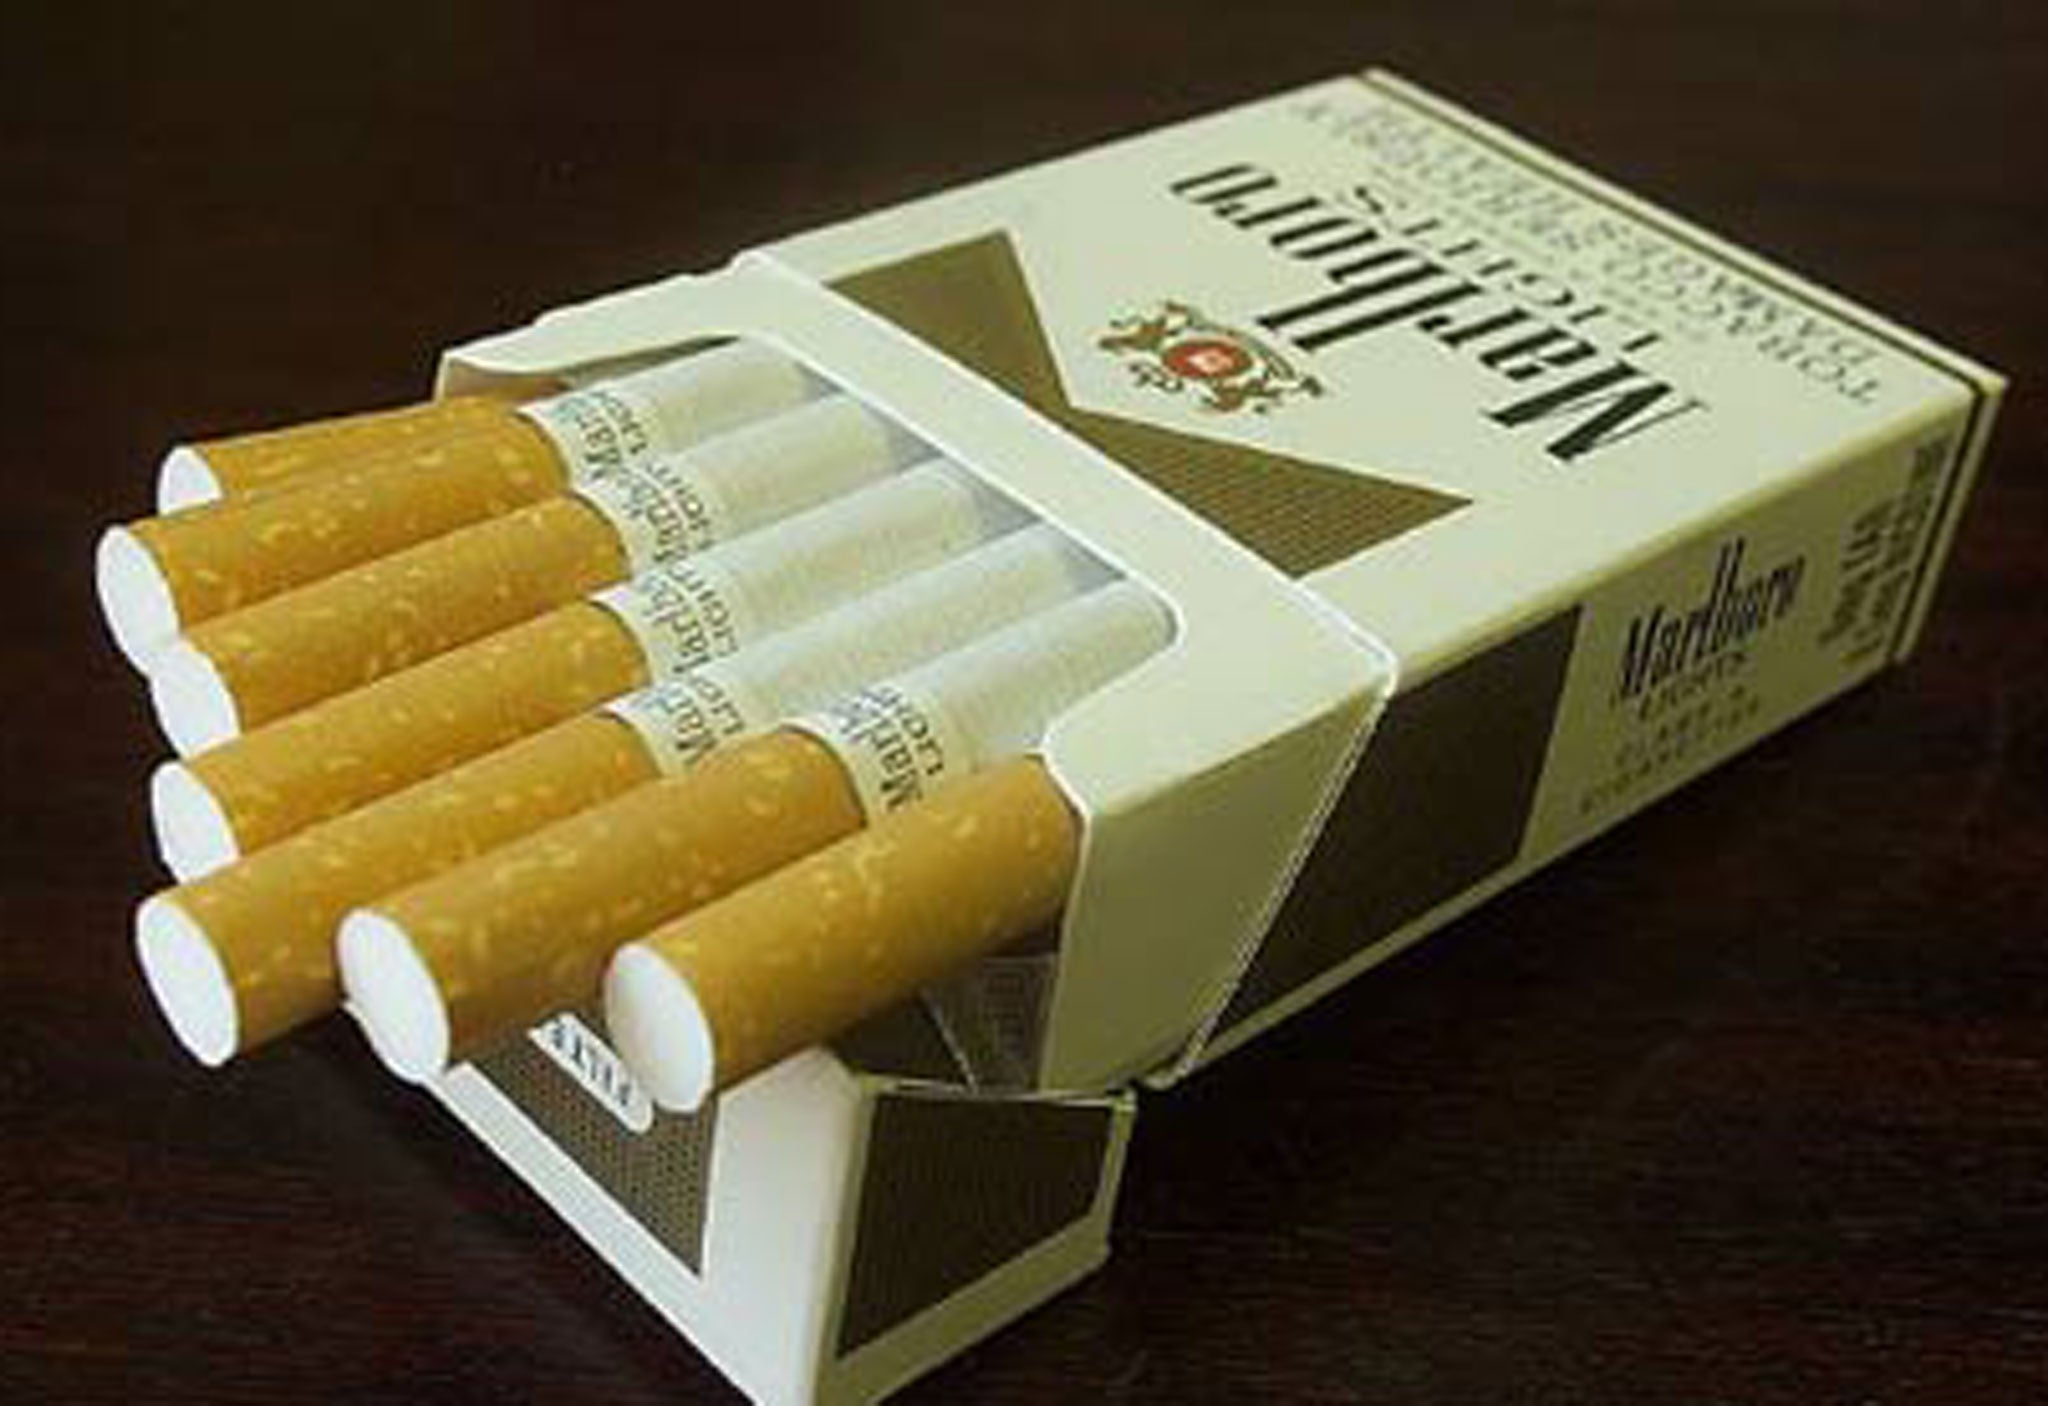 Buy Dunhill in Boston cigarettes online